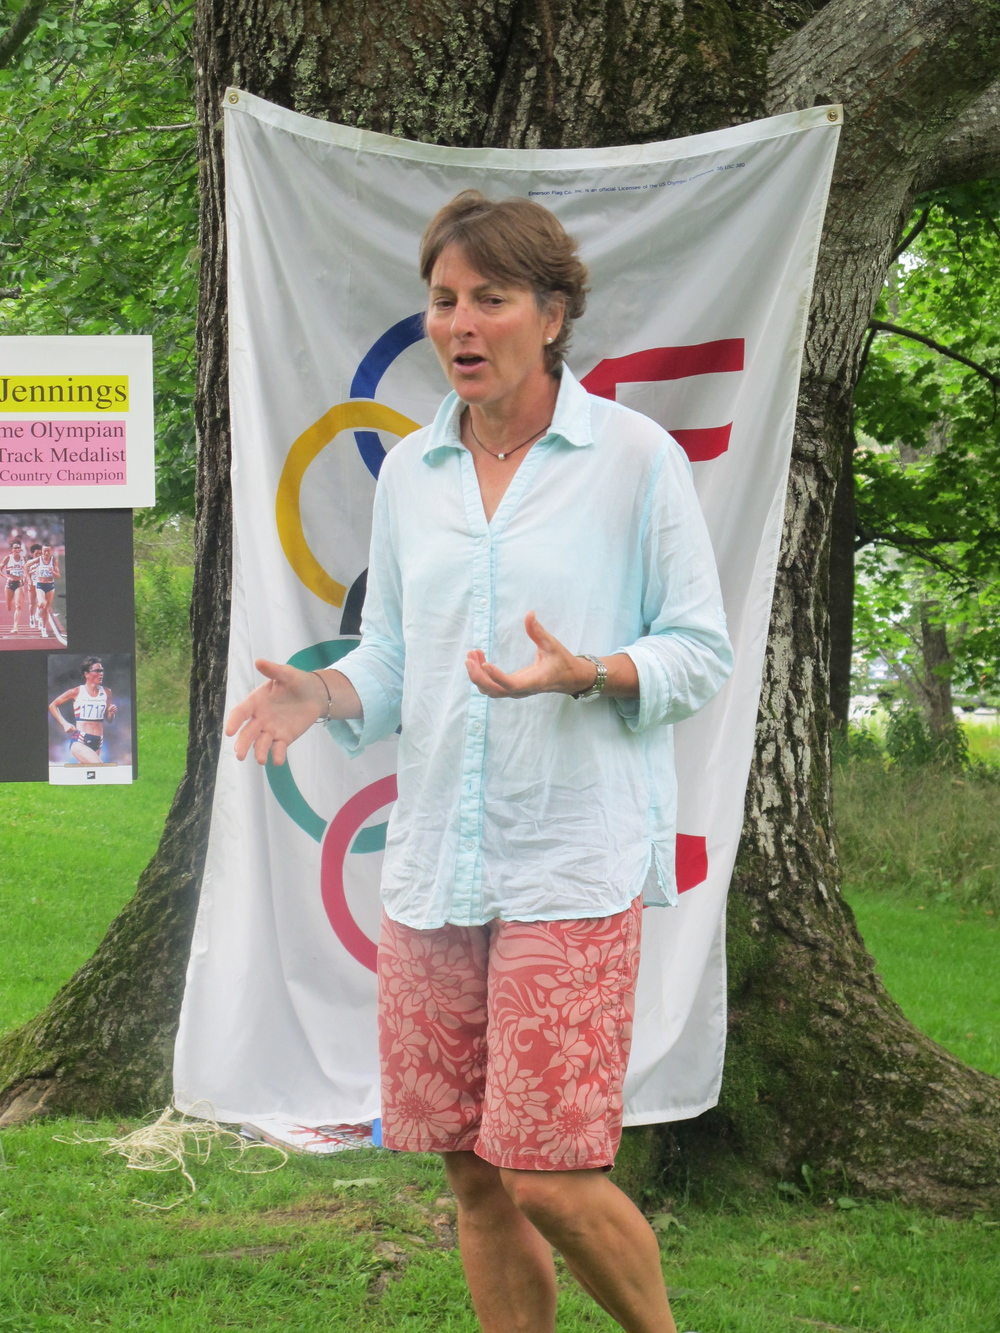 Three-time Olympic runner Lynn Jennings gave a fascinating Notebook talk on the Seal Harbor green about her career, the Olympics and running. Among the crowd was a group of young YMCA runners for whom Lynn's tale of perseverance was especially inspiring.